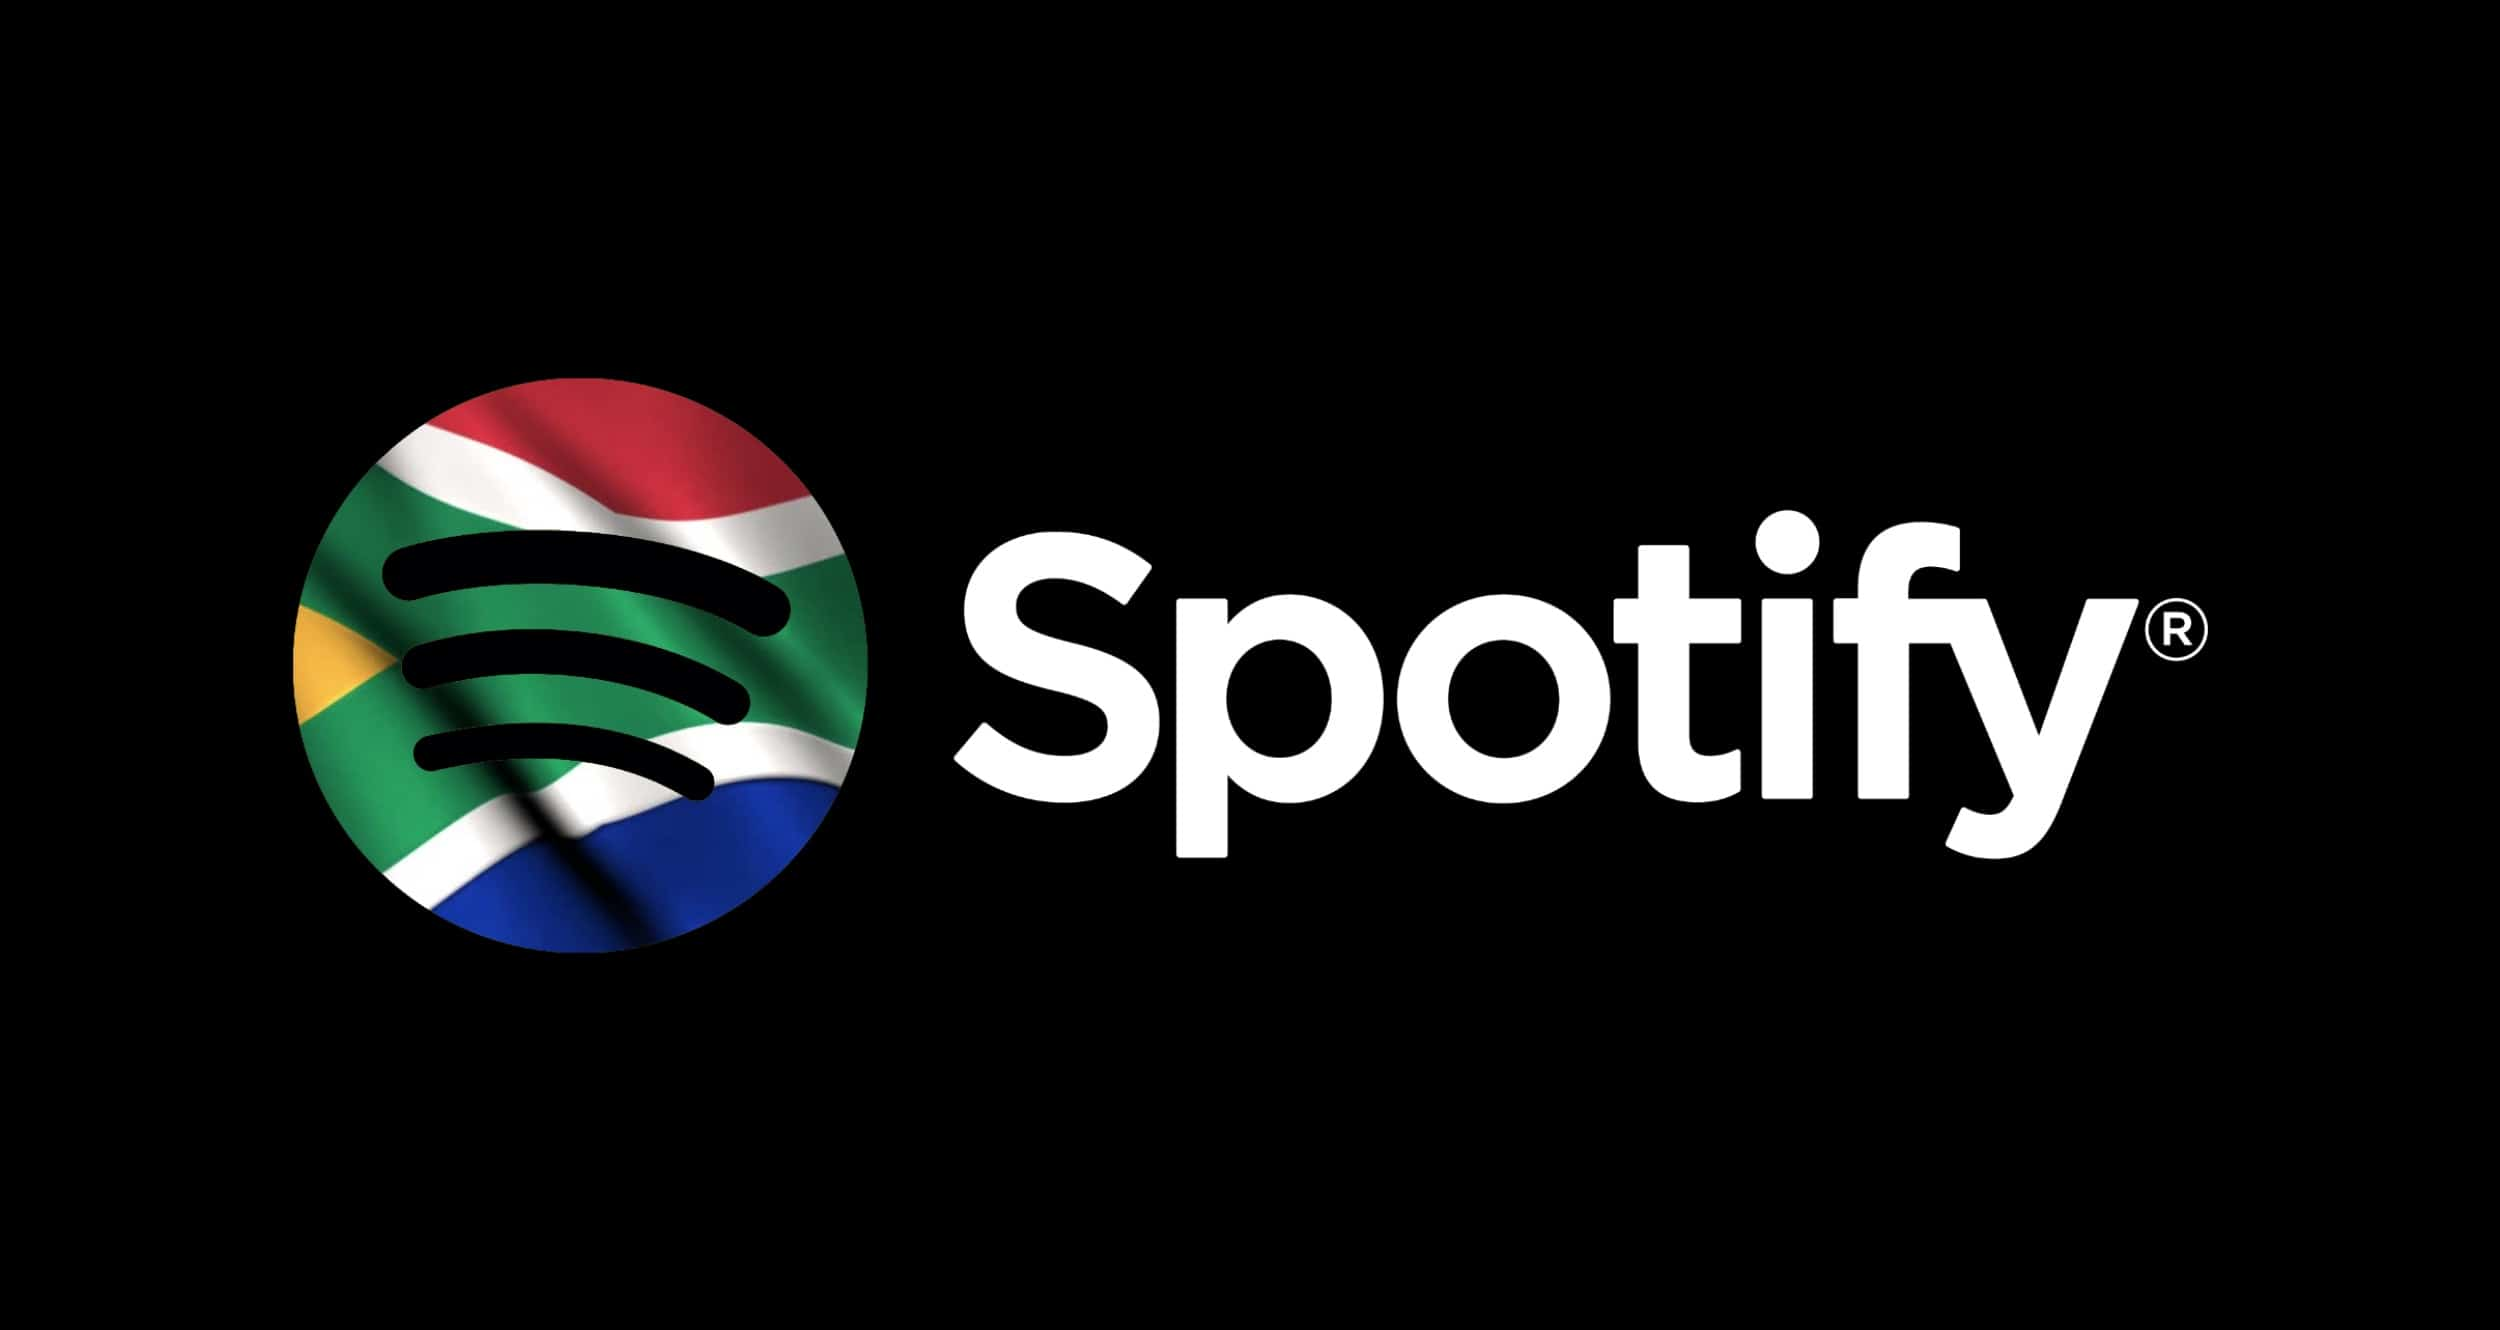 Spotify will now let users edit song information